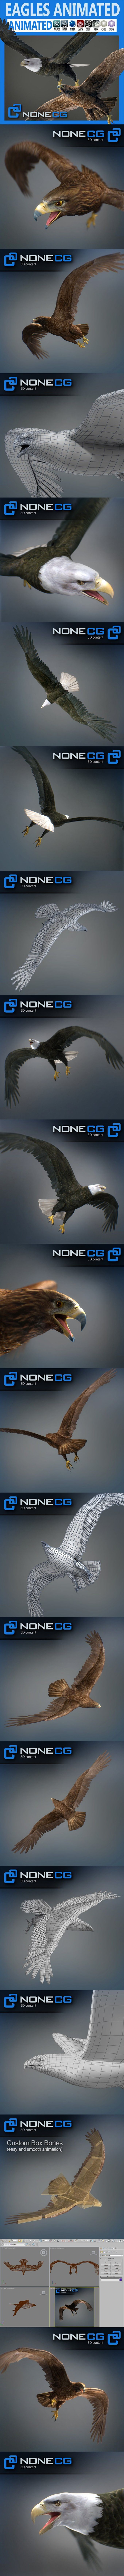 Animated Bald&Golden Eagles. 3D Animals